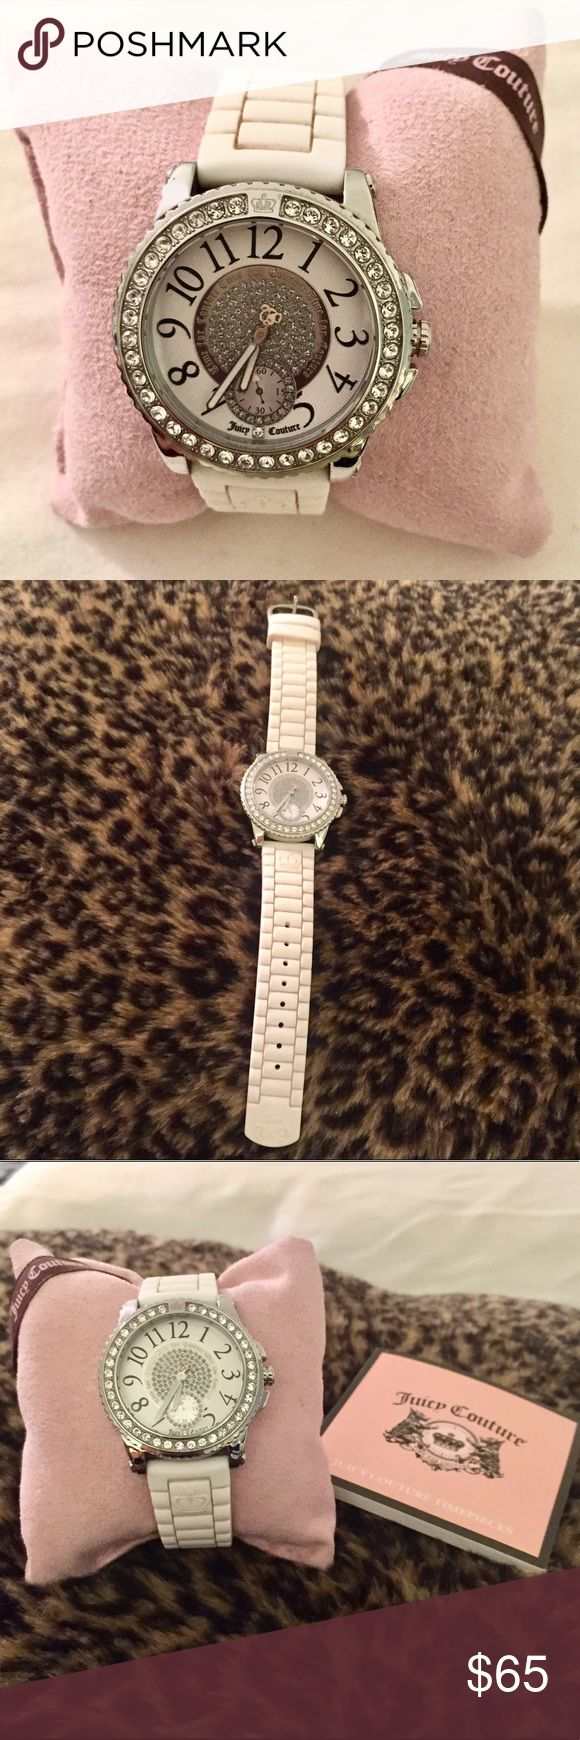 Juicy Couture Watch Super cute Juicy Couture watch in white with silver hardware! Lots of ways to adjust it and one size fits all. Used but in GREAT condition! Crystals on the inside make is so adorable 💗 Comes with original box. Feel free to make an offer :) ⚠️SHIPS FROM DIFFERENT ADDRESS-MESSAGE BEFORE BUNDLE⚠️ Juicy Couture Accessories Watches